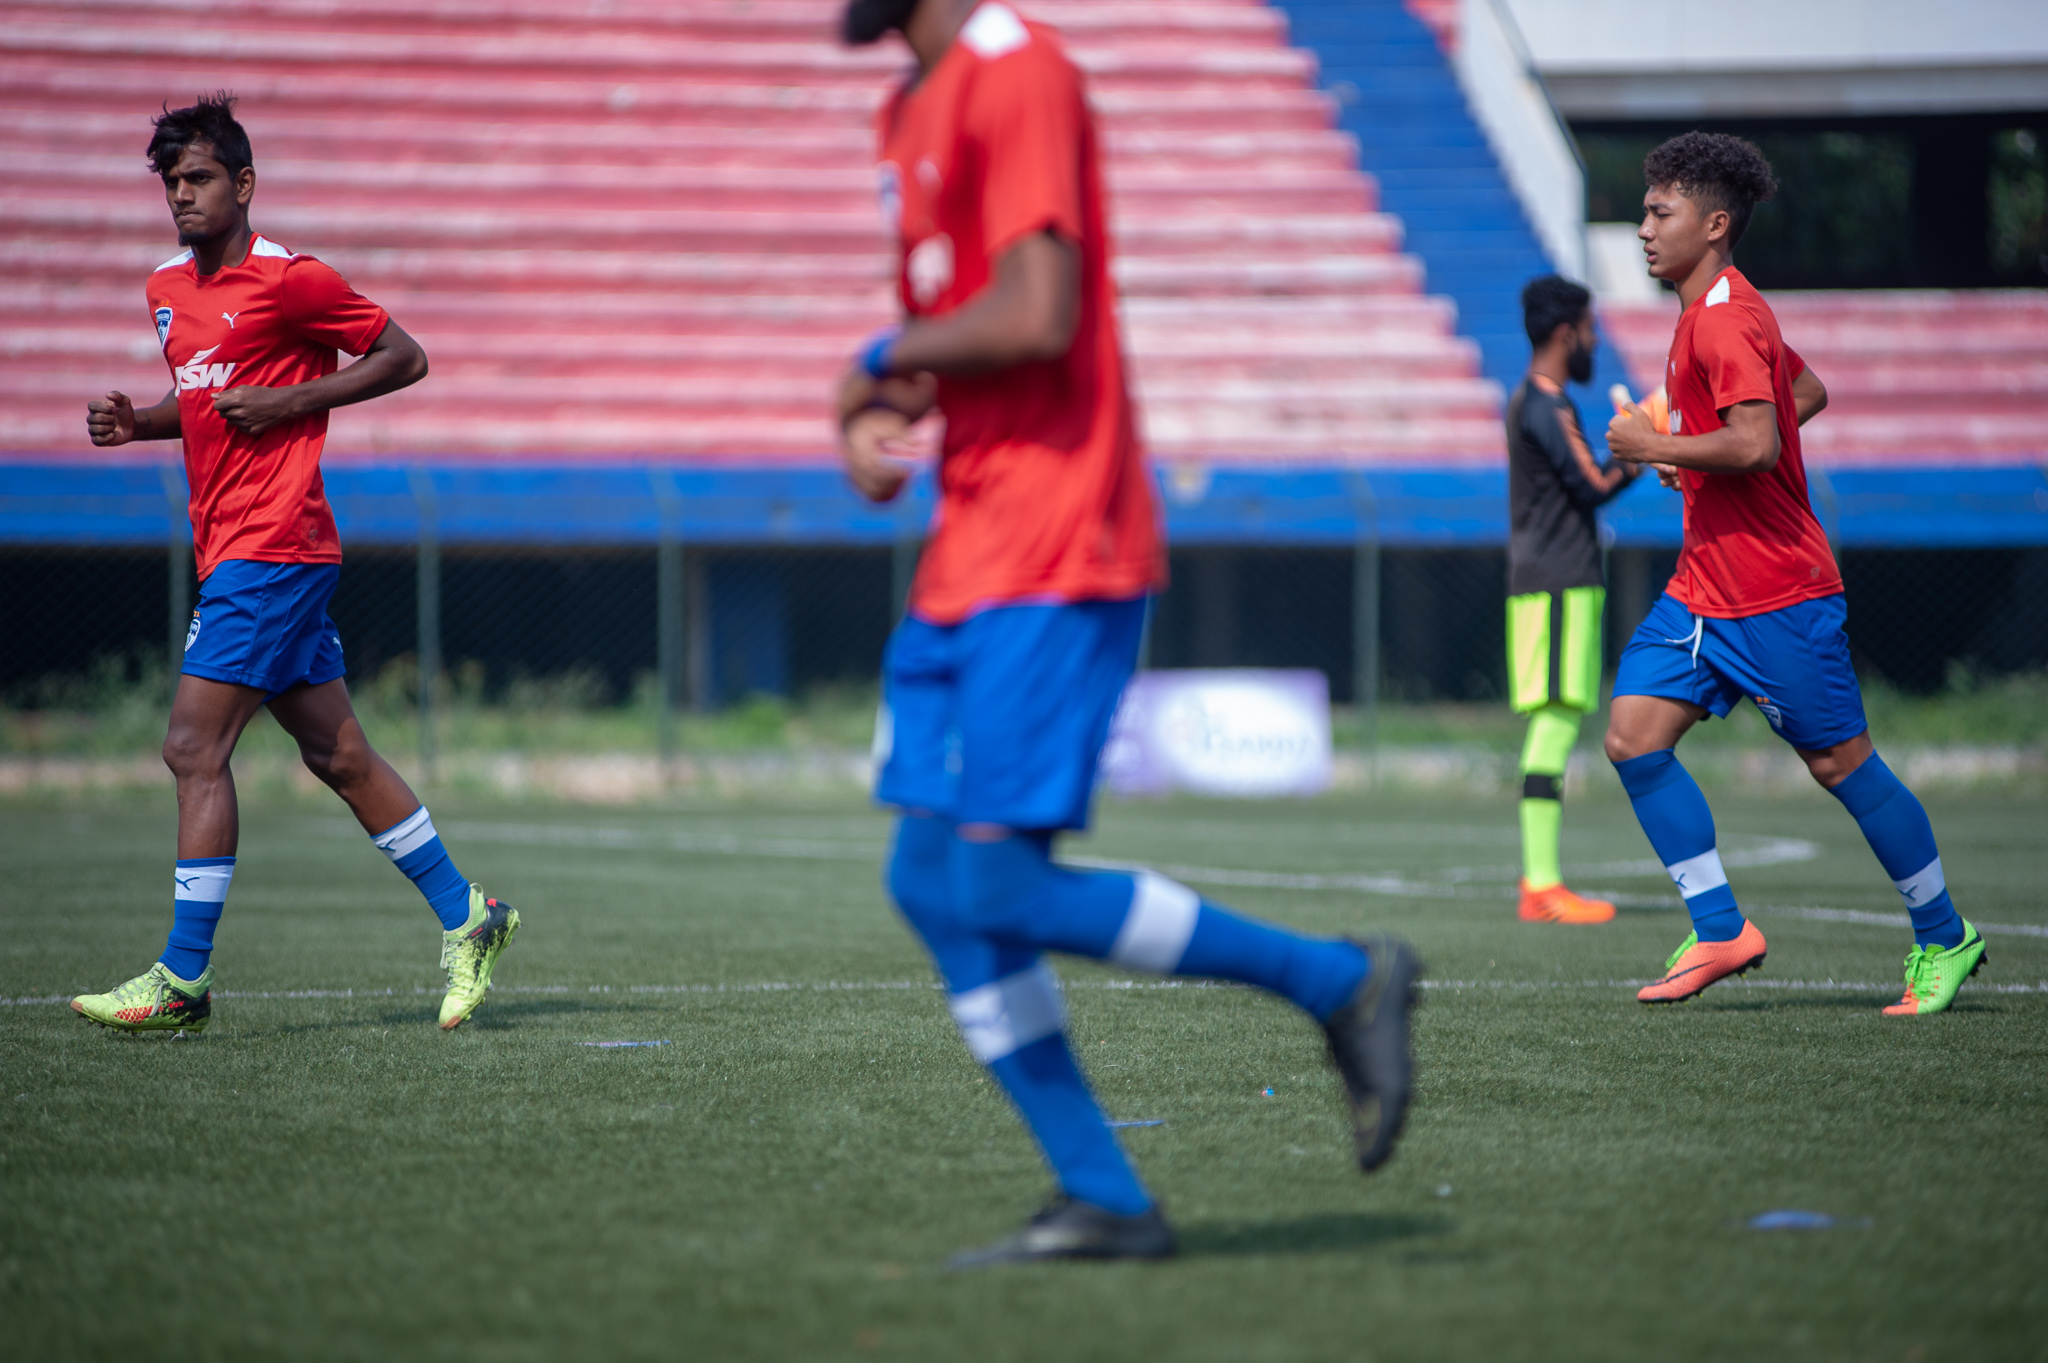 Seen here are three players of the starting XI of Bengaluru FC B warm up before the game.